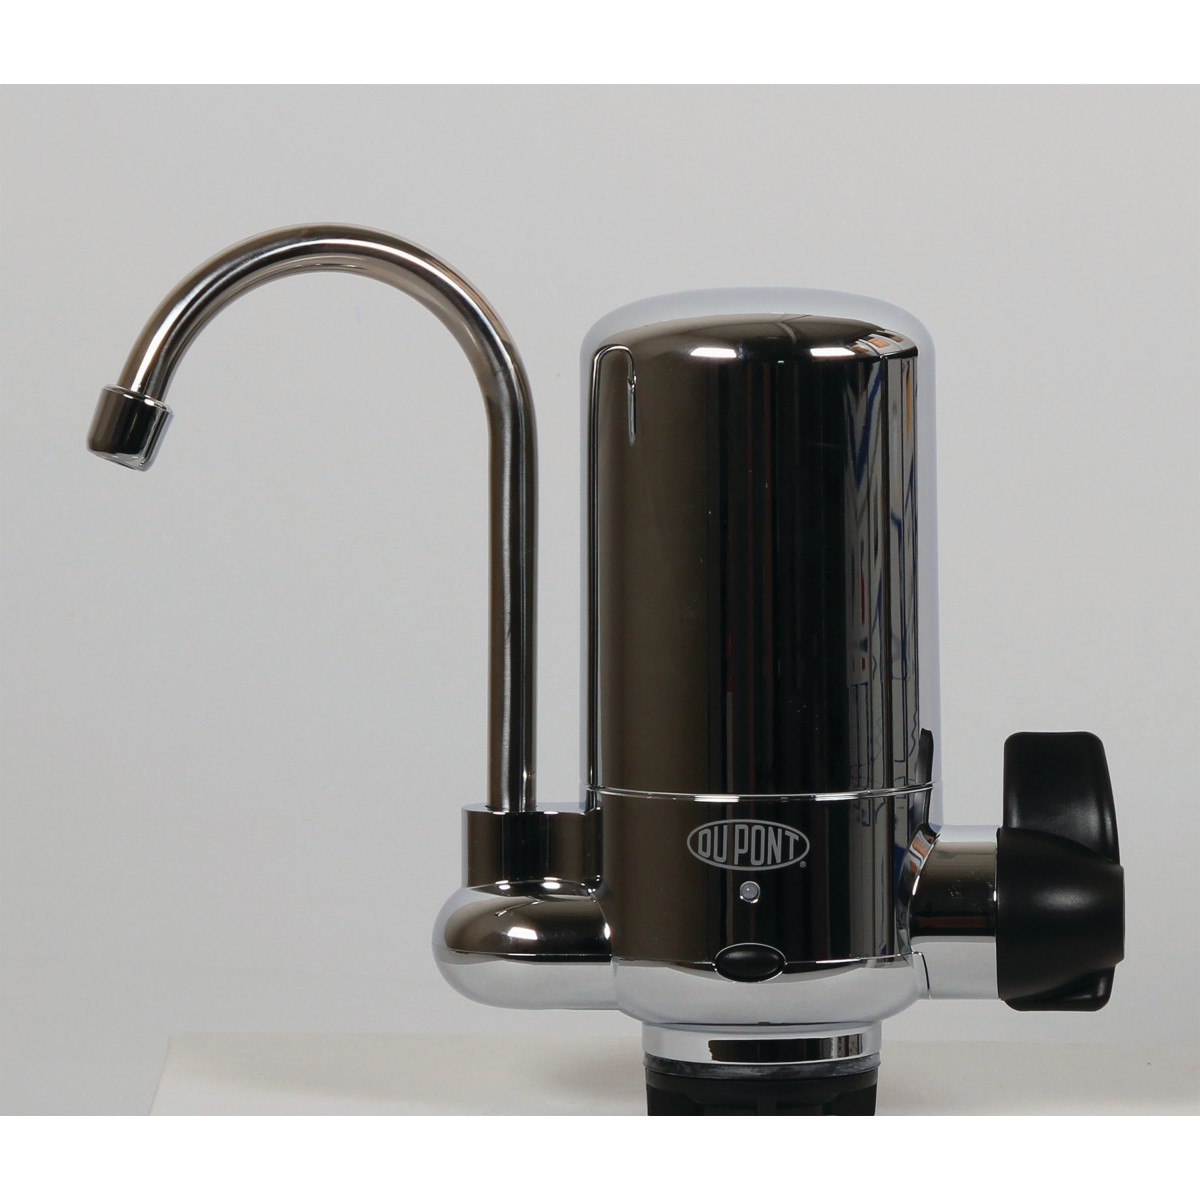 Dupont Wffs150xch Chrome Counter Top Faucet System